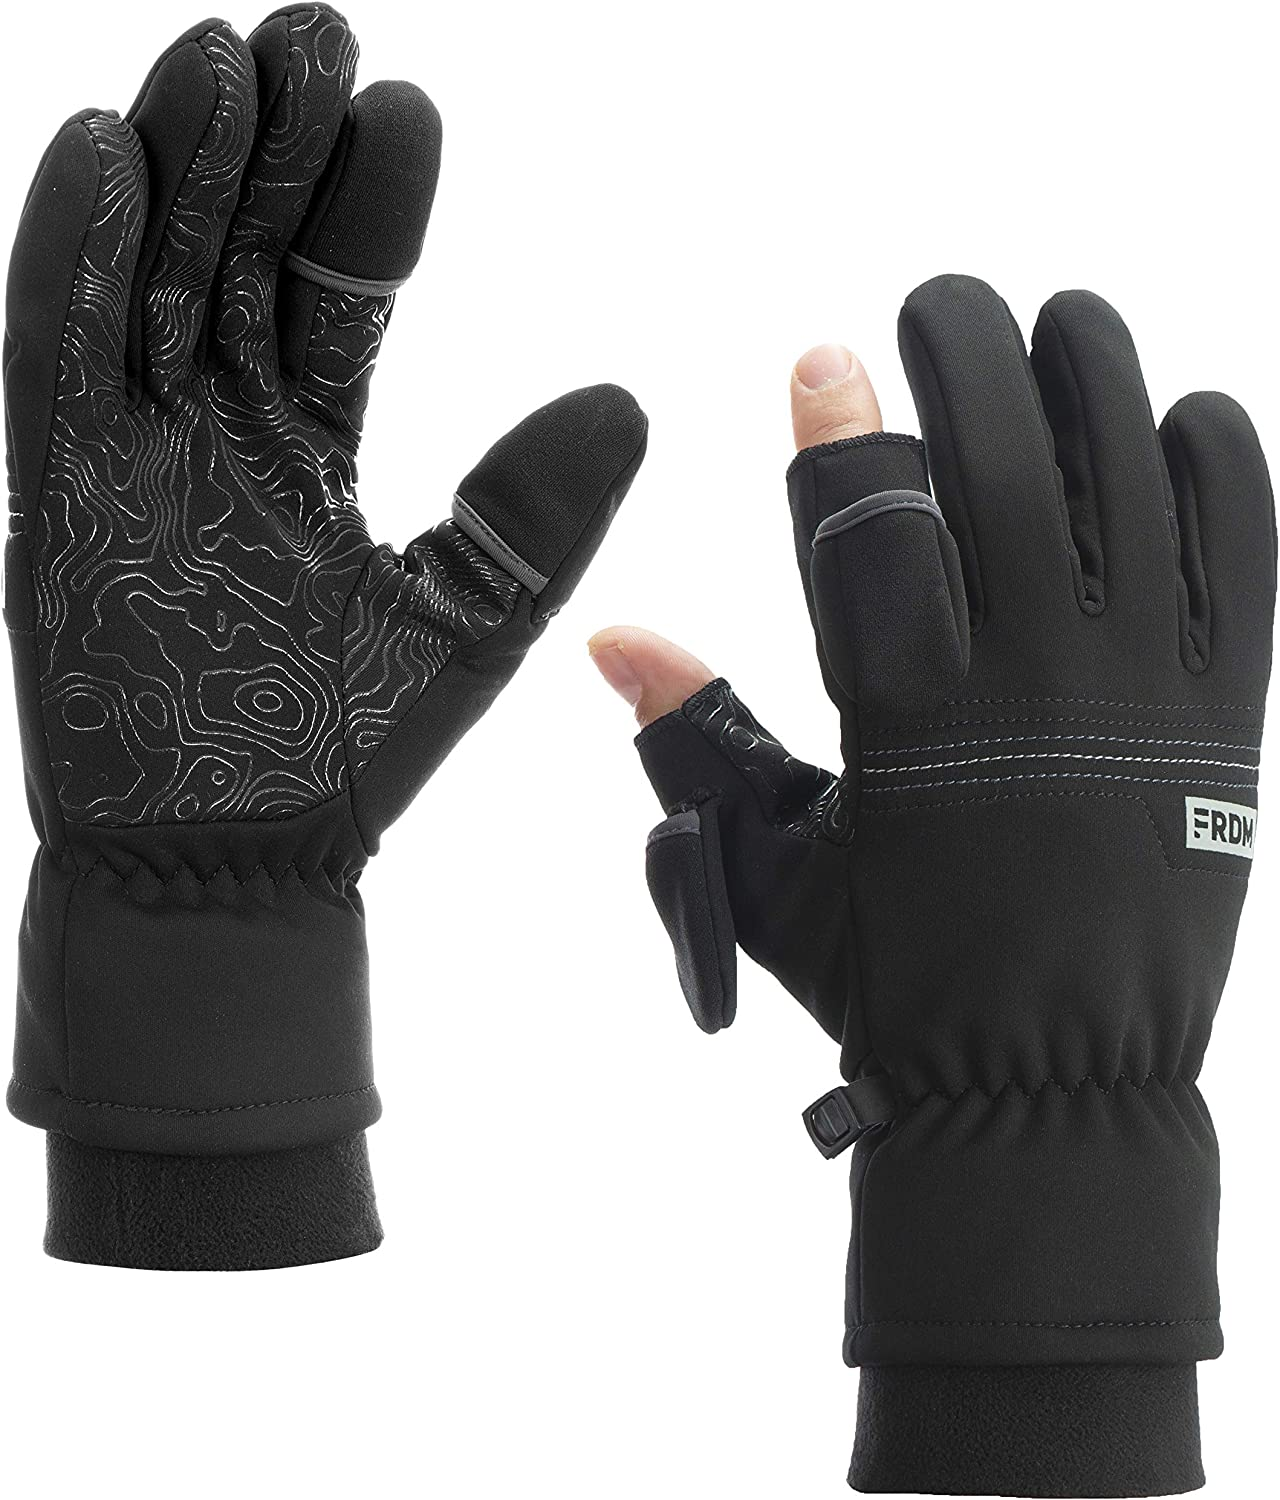 FRDM Free Regular store Fit Midweight Gloves Tucson Mall Repellent Windproof Touchsc Water